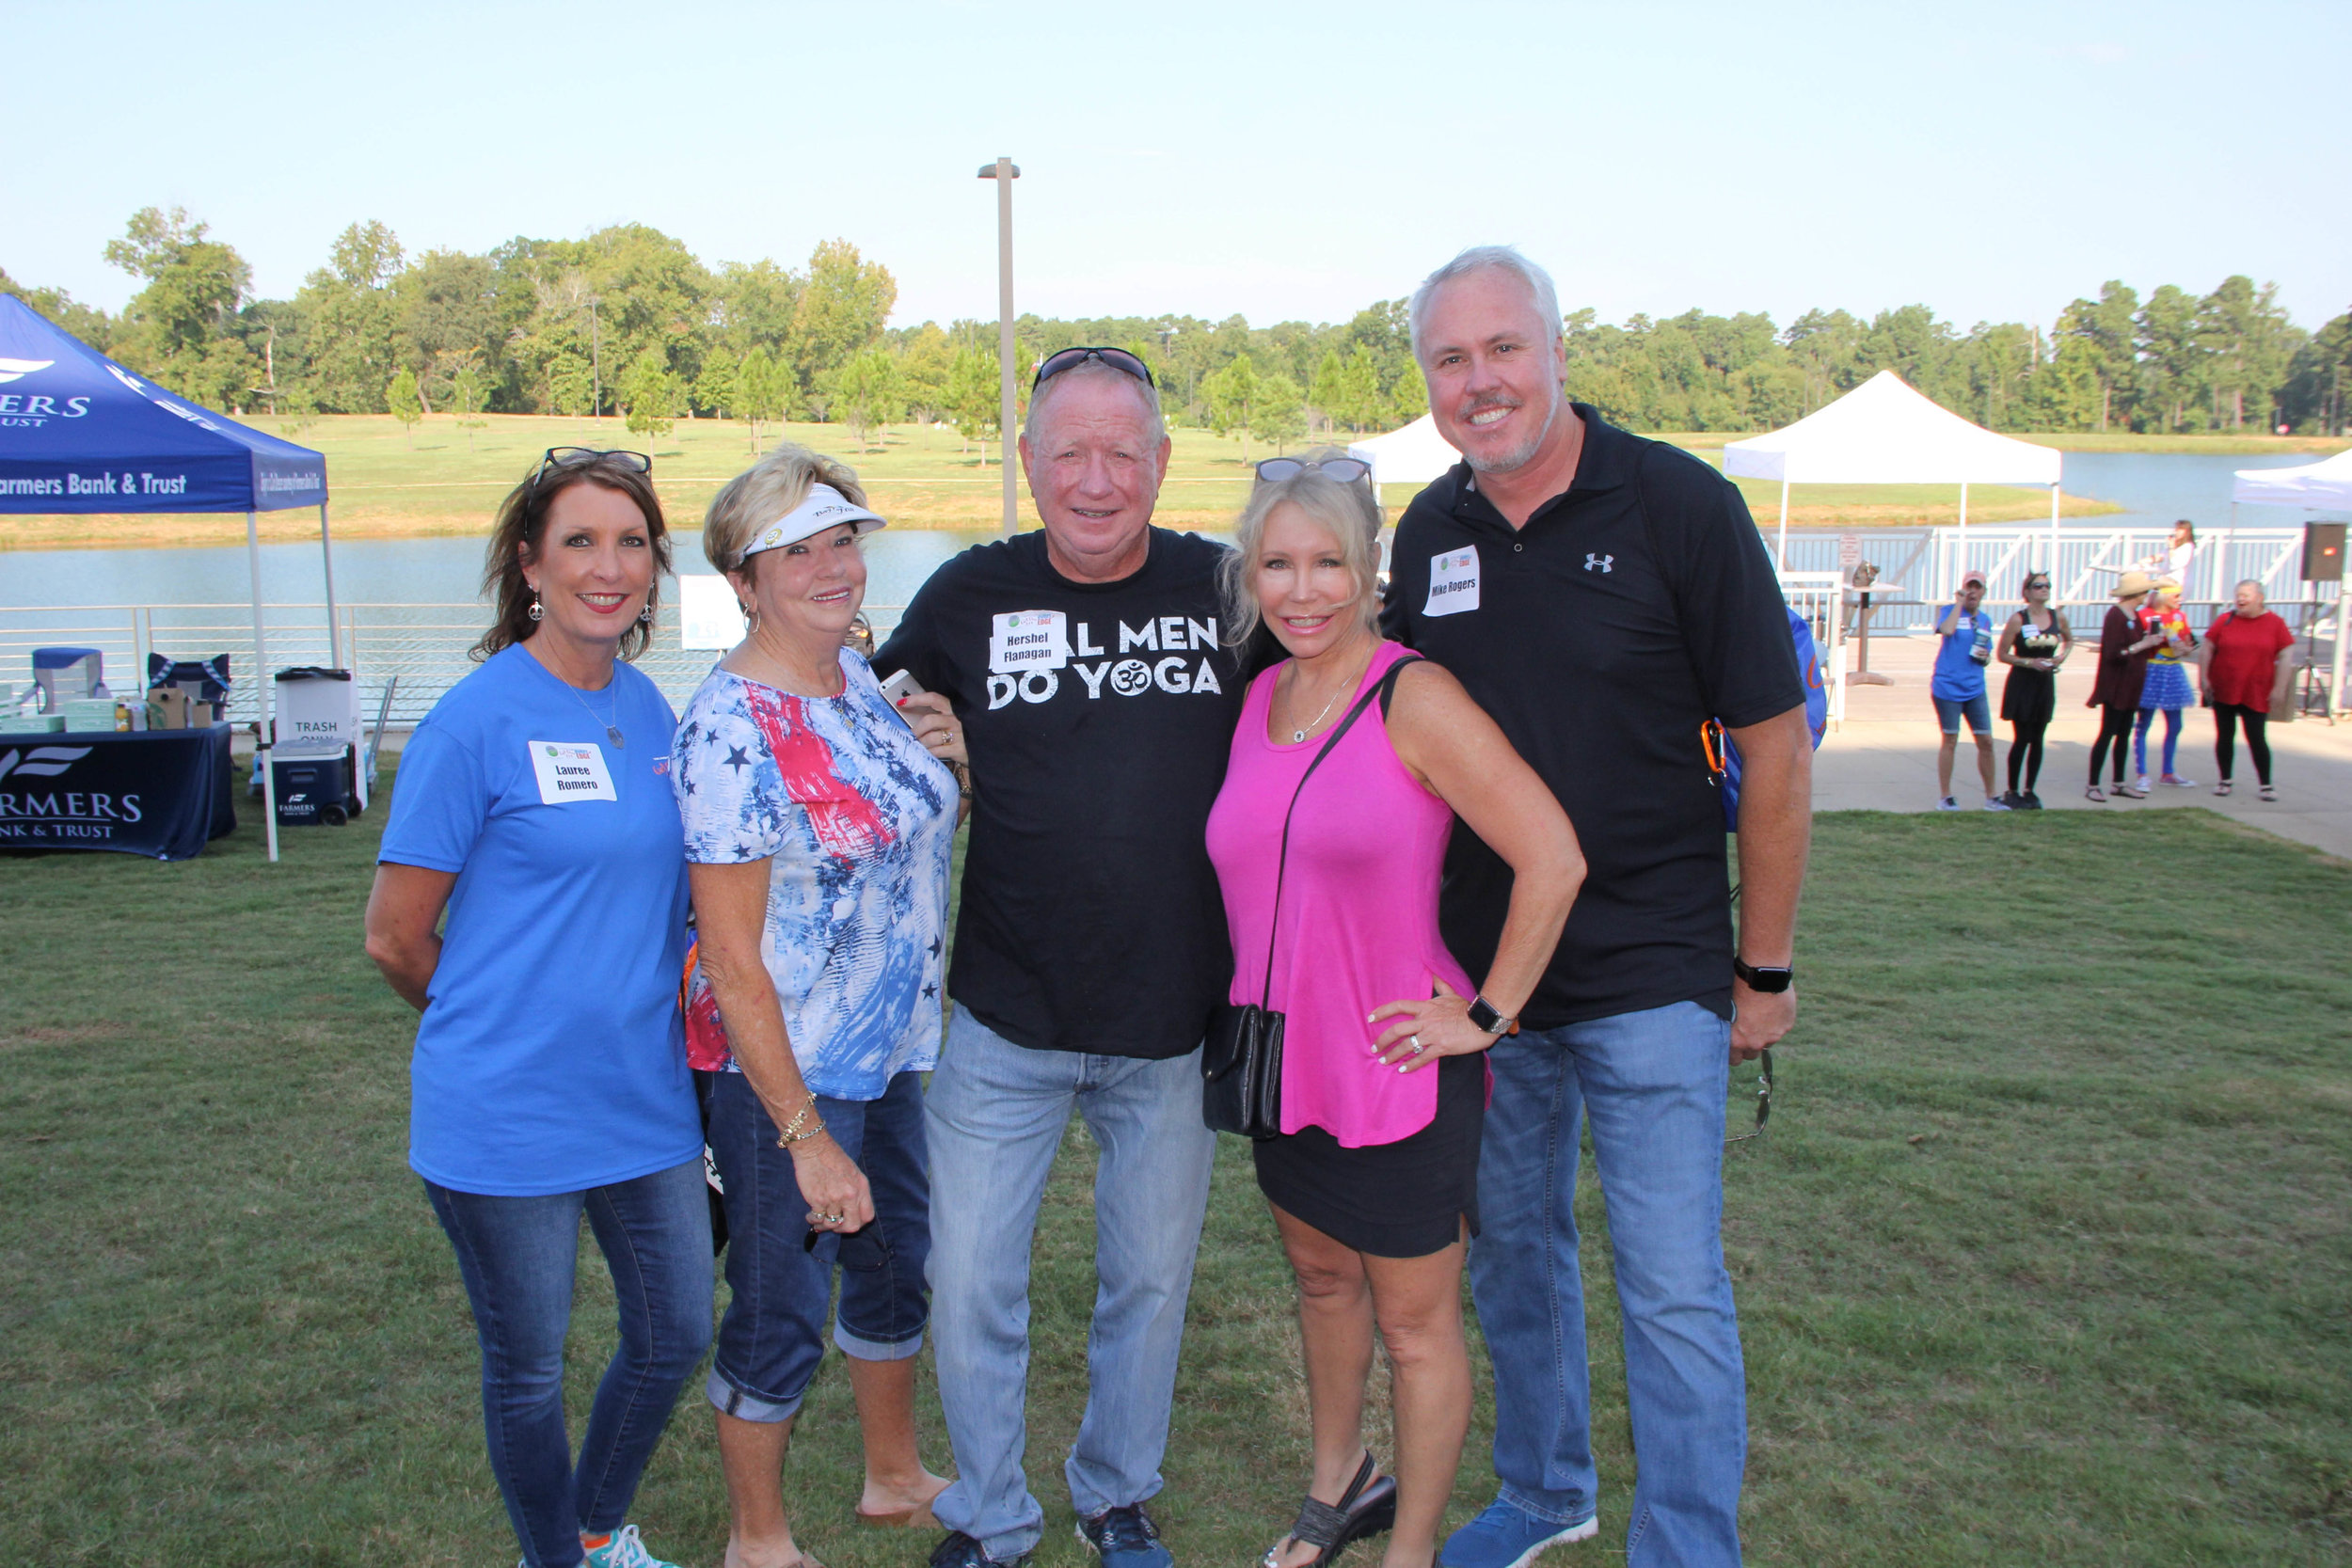 Lauree Romero, Elaine and Hershel Flanagan and Jeanna and Mike Rogers